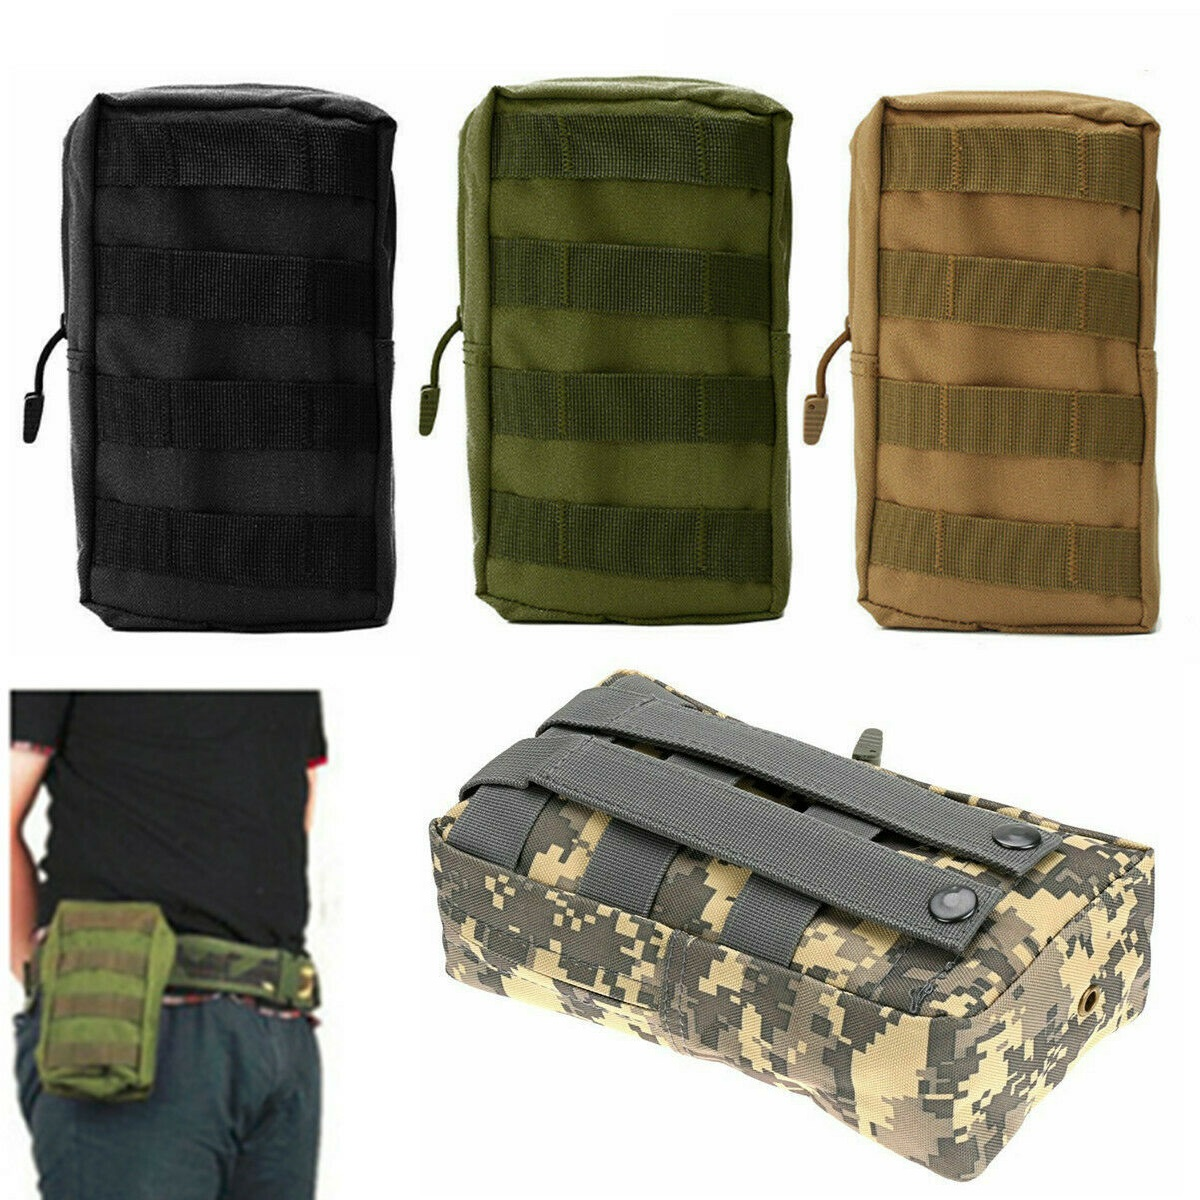 Bag Belt Molle Pouch Tactical Waist Pack Outdoor Military Pack Phone Pocket EDC